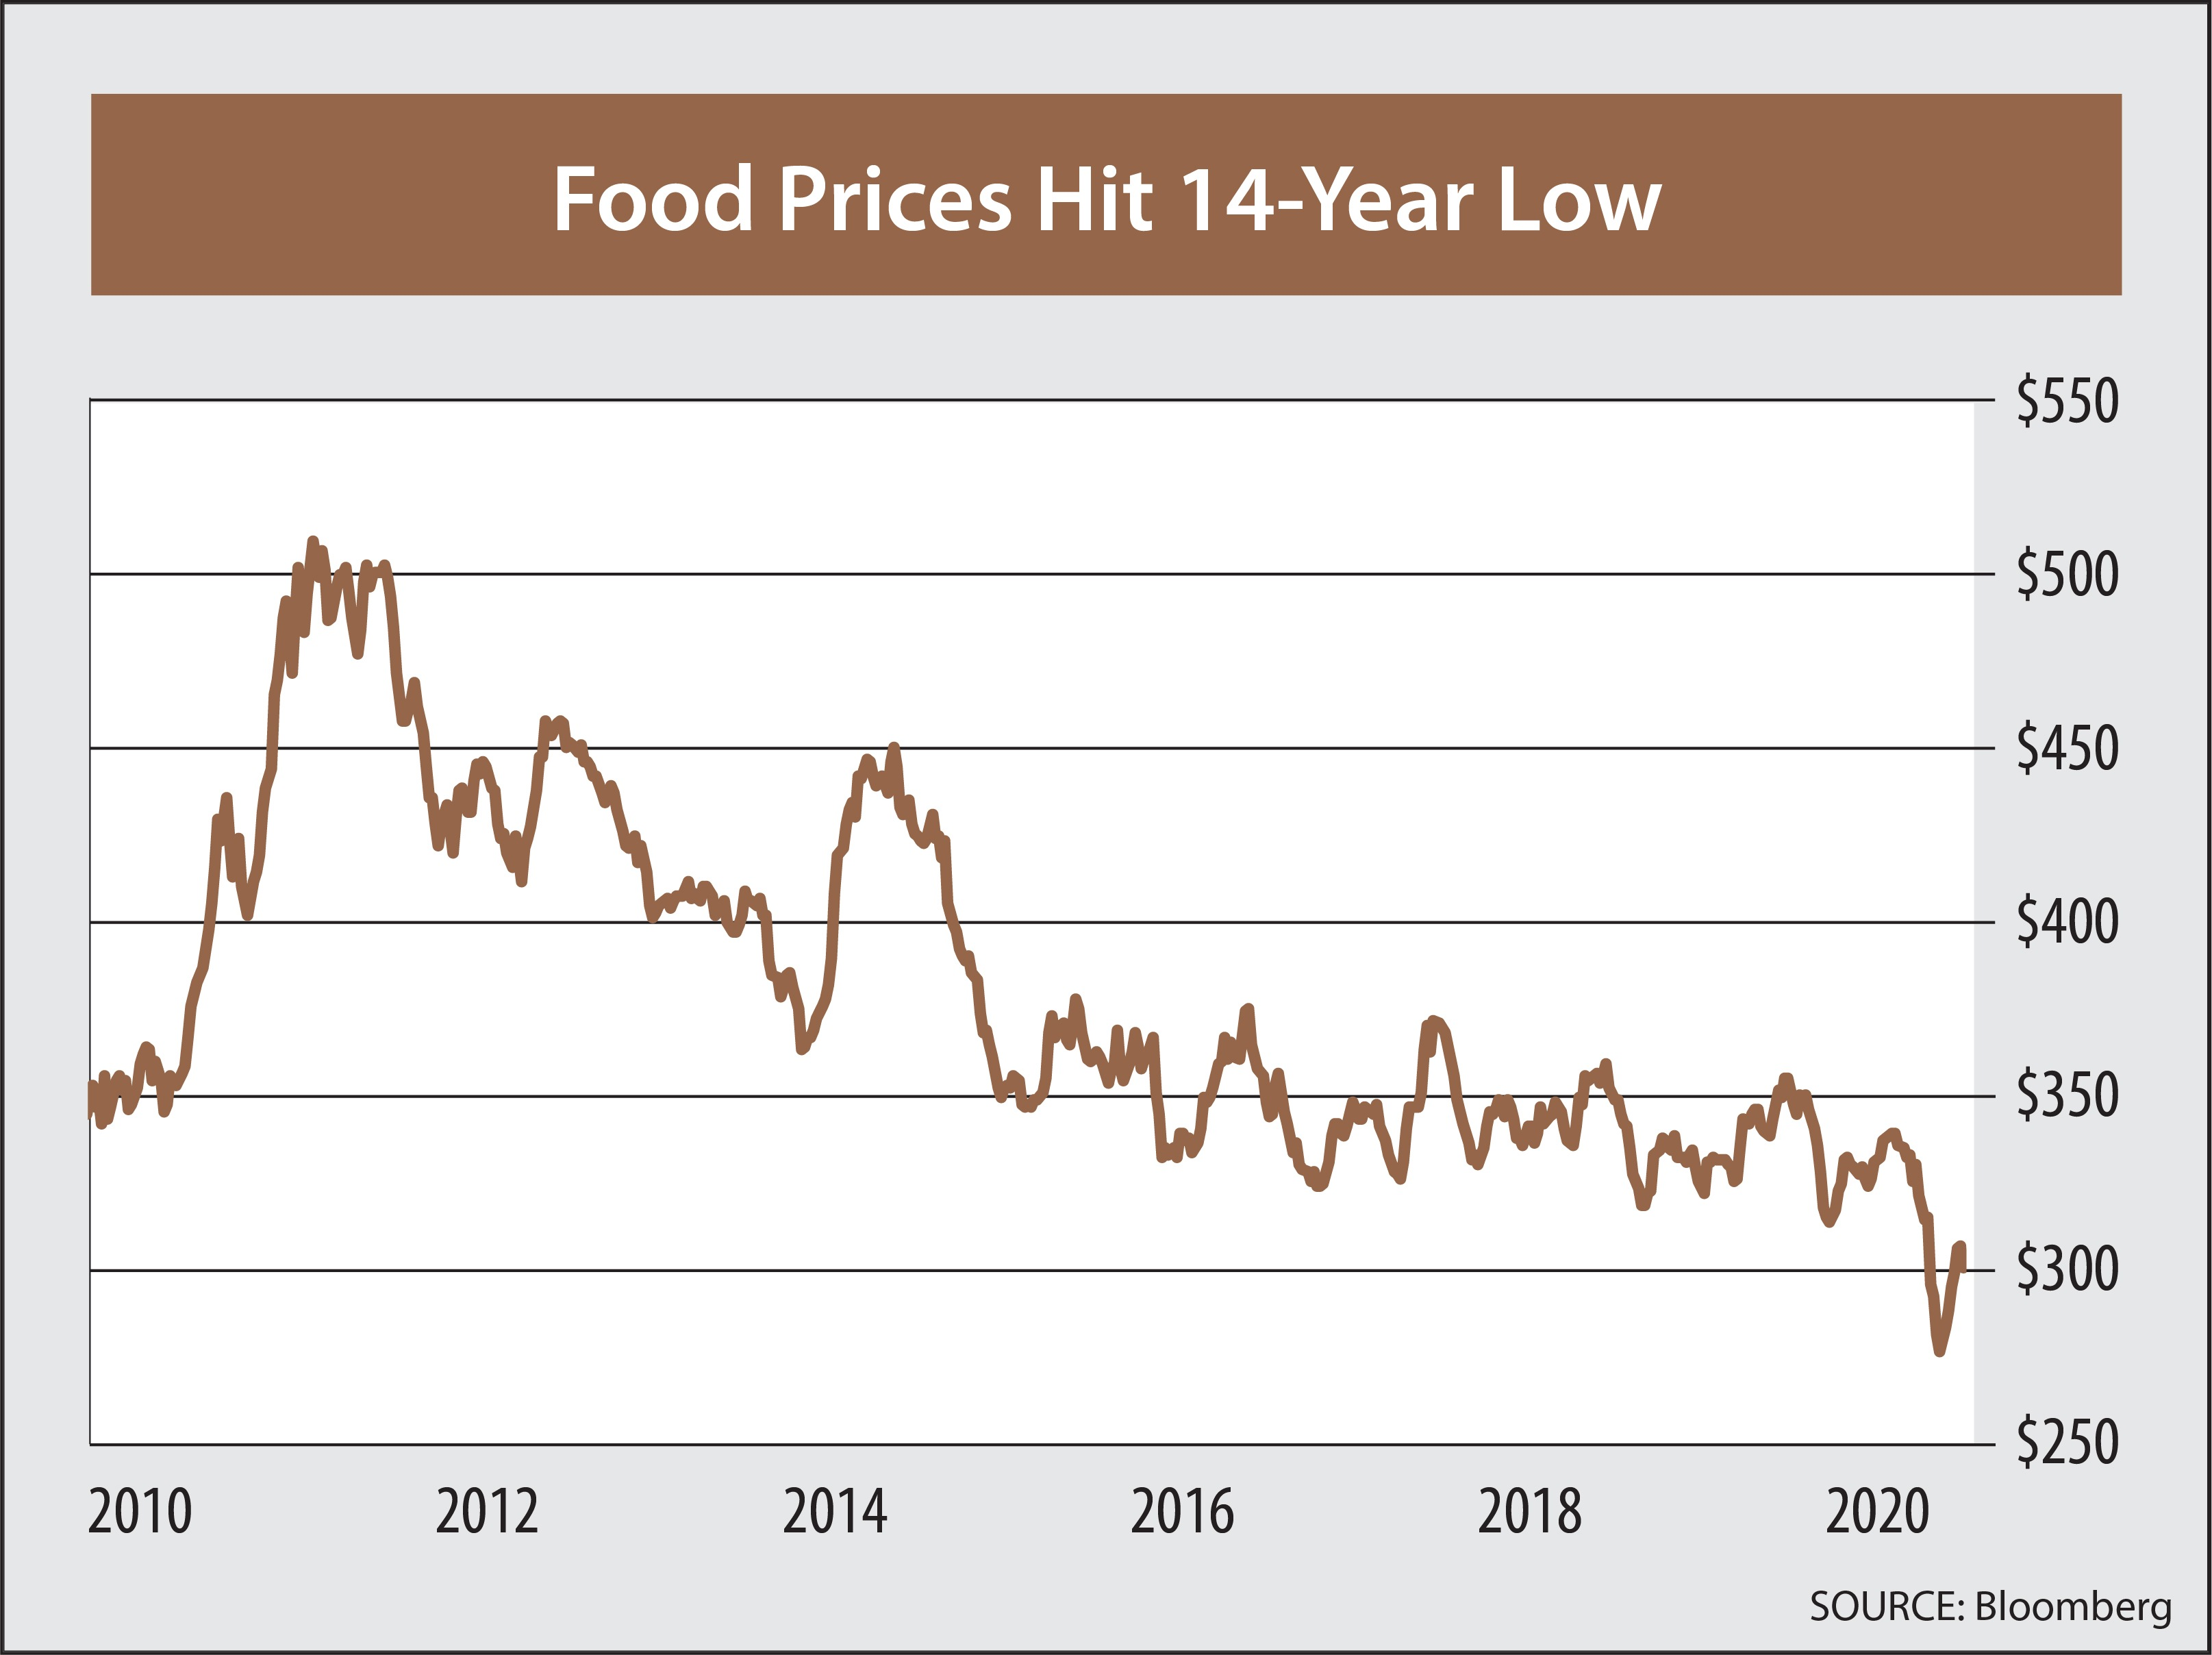 Chart showing that food prices in the U.S. have trended downward since 2011. They've now hit a 14-year low.